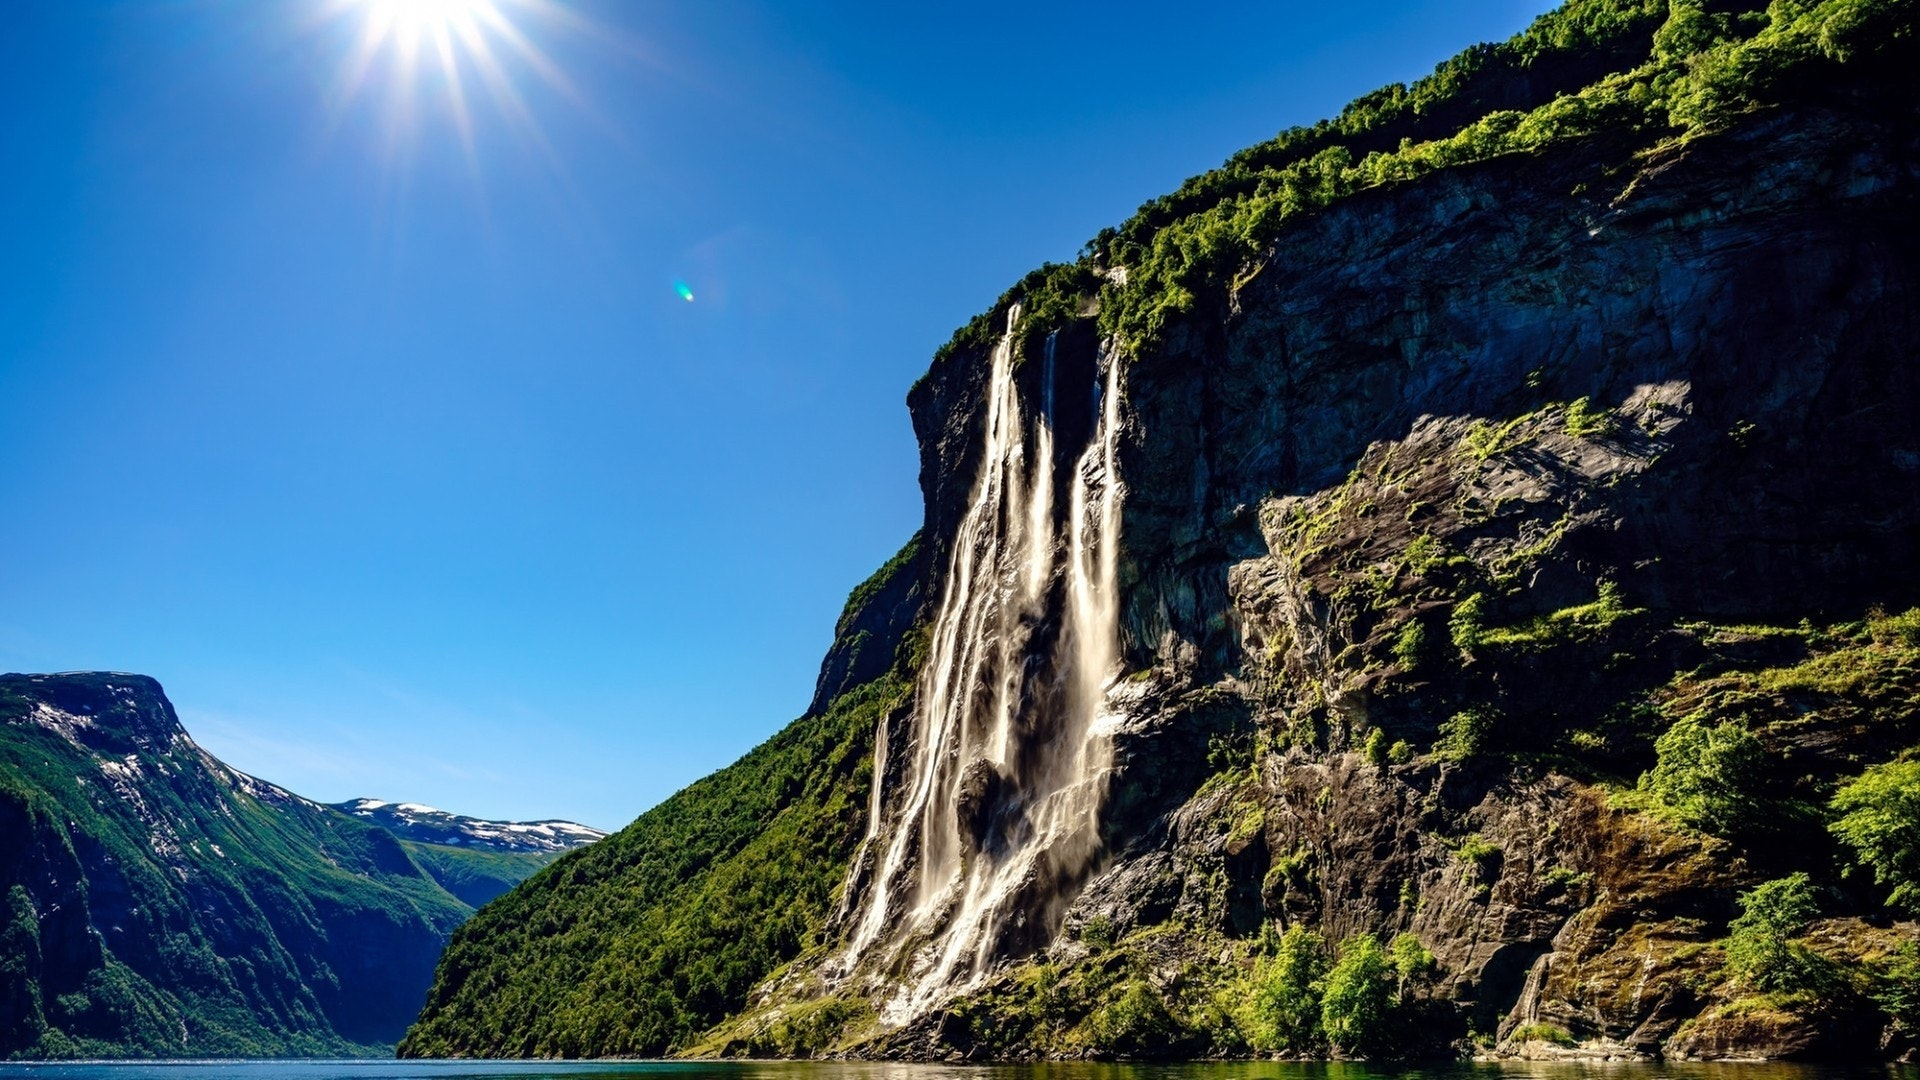 Geiranger fjord, waterfall Seven Sisters. Norway natural landscape